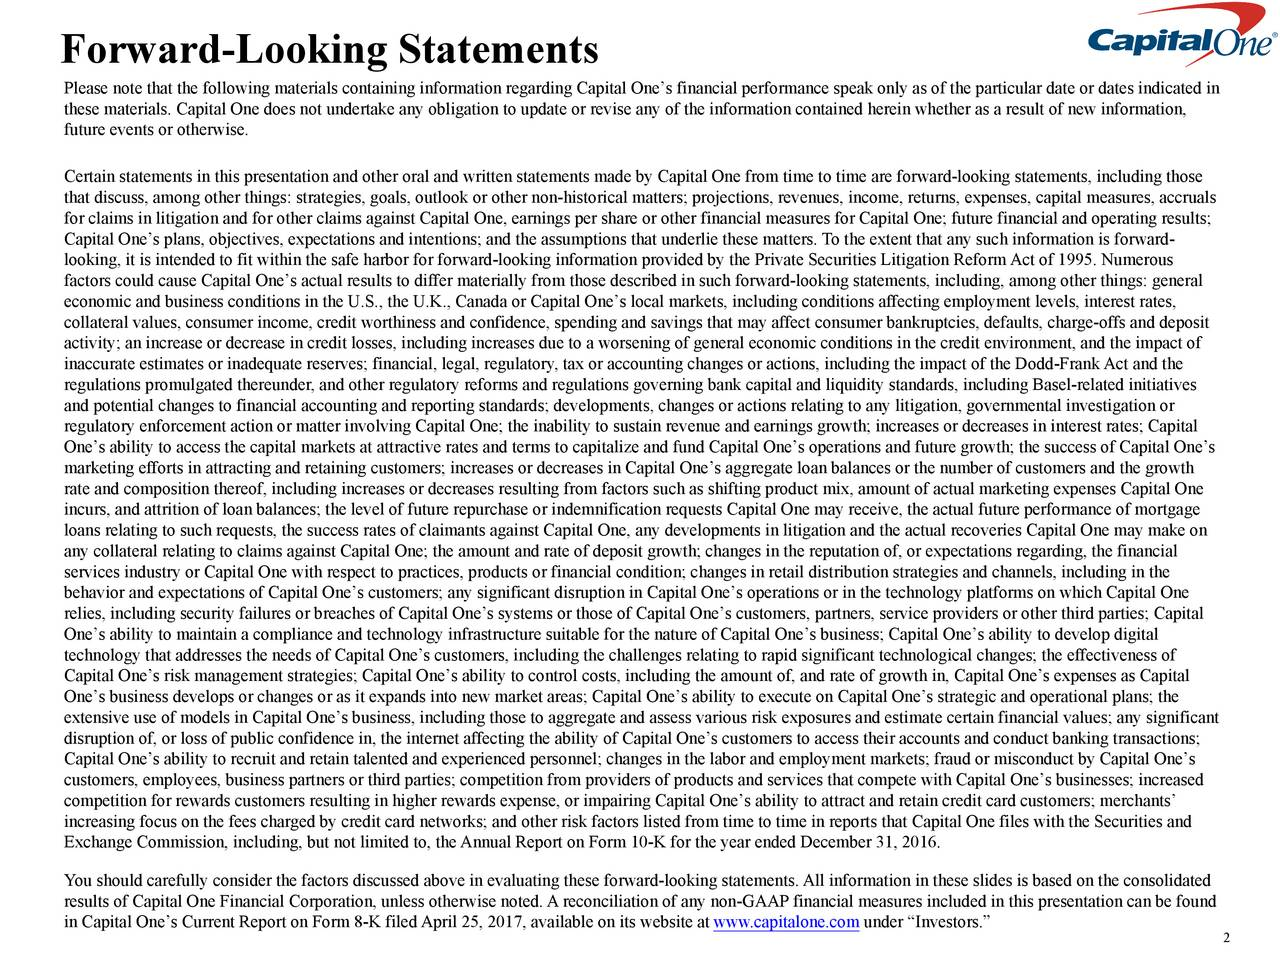 Please note that the following materials containing information regarding Capital Ones financial performance speak only as of the particular date or dates indicated in these materials. Capital One does not undertake any obligation to update or revise any of the information contained herein whether as a result of new information, future events or otherwise. Certain statements in this presentation and other oral and written statements made by Capital One from time to time are forward-looking statements, including those that discuss, among other things: strategies, goals, outlook or other non-historical matters; projections, revenues, income, returns, expenses, capital measures, accruals for claims in litigation and for other claims against Capital One, earnings per share or other financial measures for Capital One; future financial and operating results; Capital Ones plans, objectives, expectations and intentions; and the assumptions that underlie these matters. To the extent that any such information is forward- looking, it is intended to fit within the safe harbor for forward-looking information provided by the Private Securities Litigation Reform Act of 1995. Numerous factors could cause Capital Ones actual results to differ materially from those described in such forward-looking statements, including, among other things: general economic and business conditions in the U.S., the U.K., Canada or Capital Ones local markets, including conditions affecting employment levels, interest rates, collateral values, consumer income, credit worthiness and confidence, spending and savings that may affect consumer bankruptcies, defaults, charge-offs and deposit activity; an increase or decrease in credit losses, including increases due to a worsening of general economic conditions in the credit environment, and the impact of inaccurate estimates or inadequate reserves; financial, legal, regulatory, tax or accounting changes or actions, including the impact of the Dodd-Frank Act 